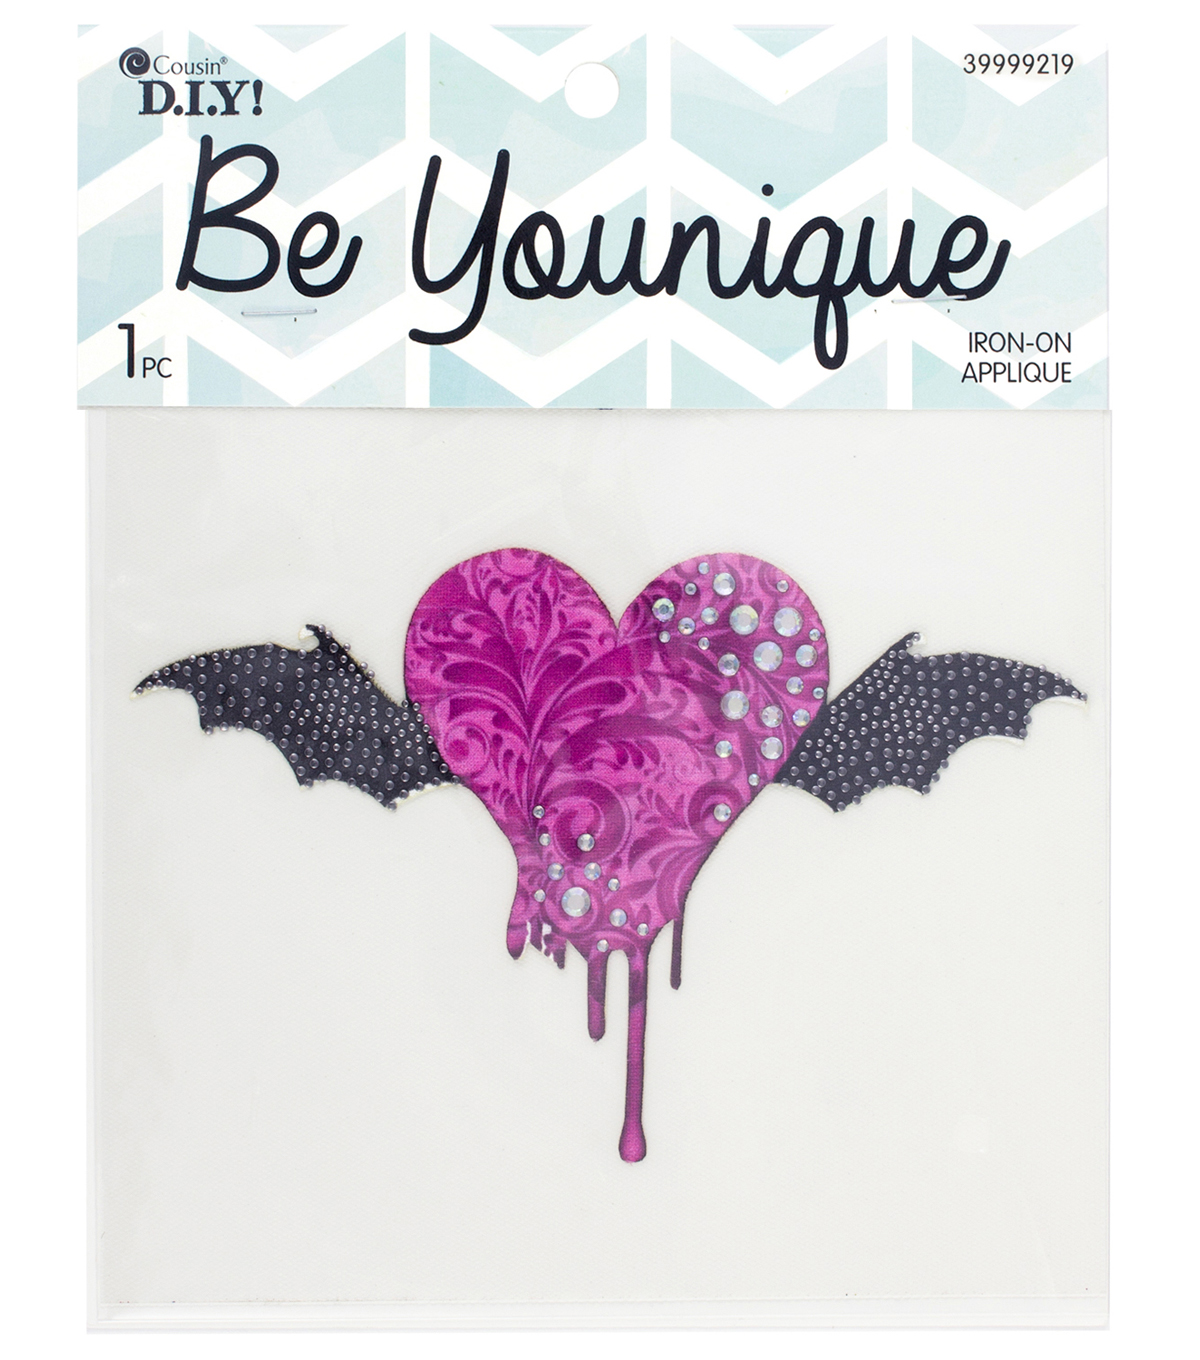 Cousin® DIY Be Younique Iron-On Transfer-Bat Heart